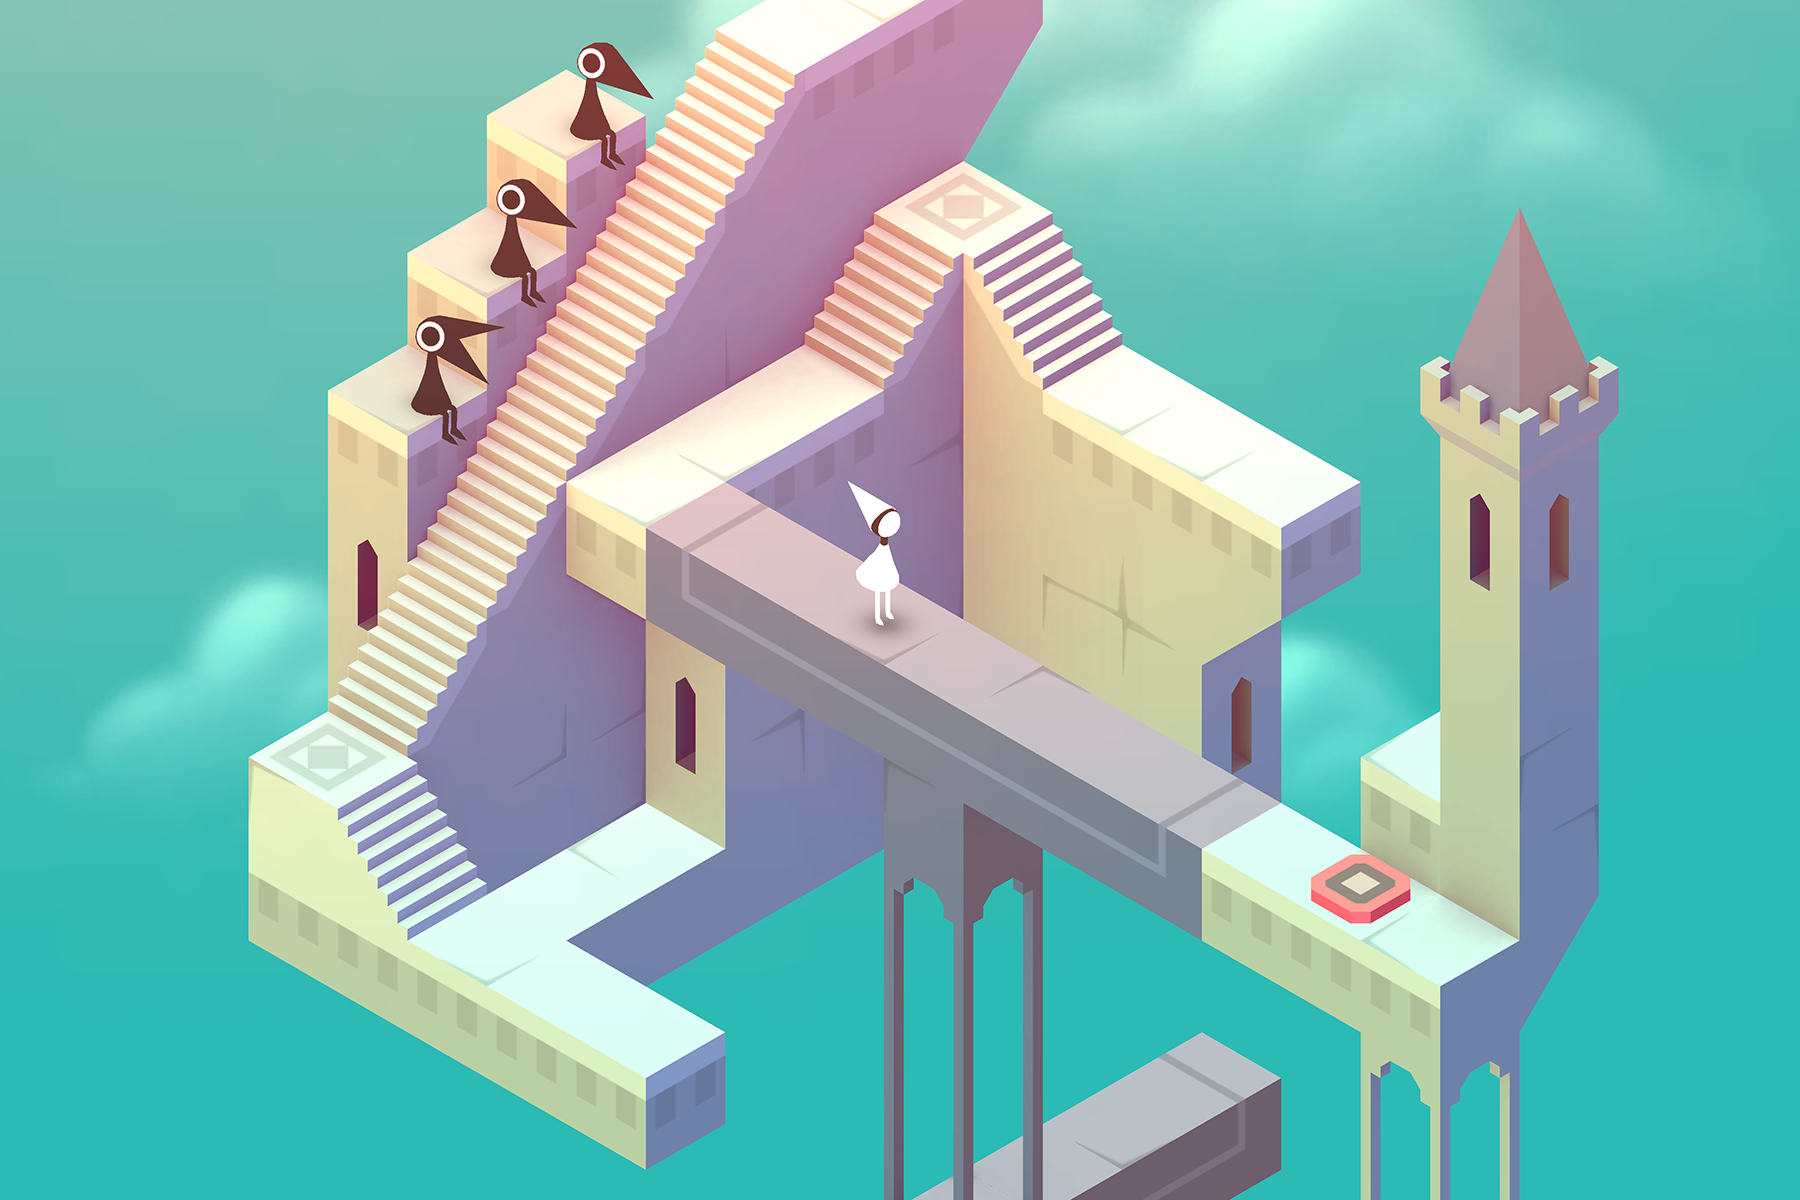 Monument Valley A Surreal Exploration Through Fantastical